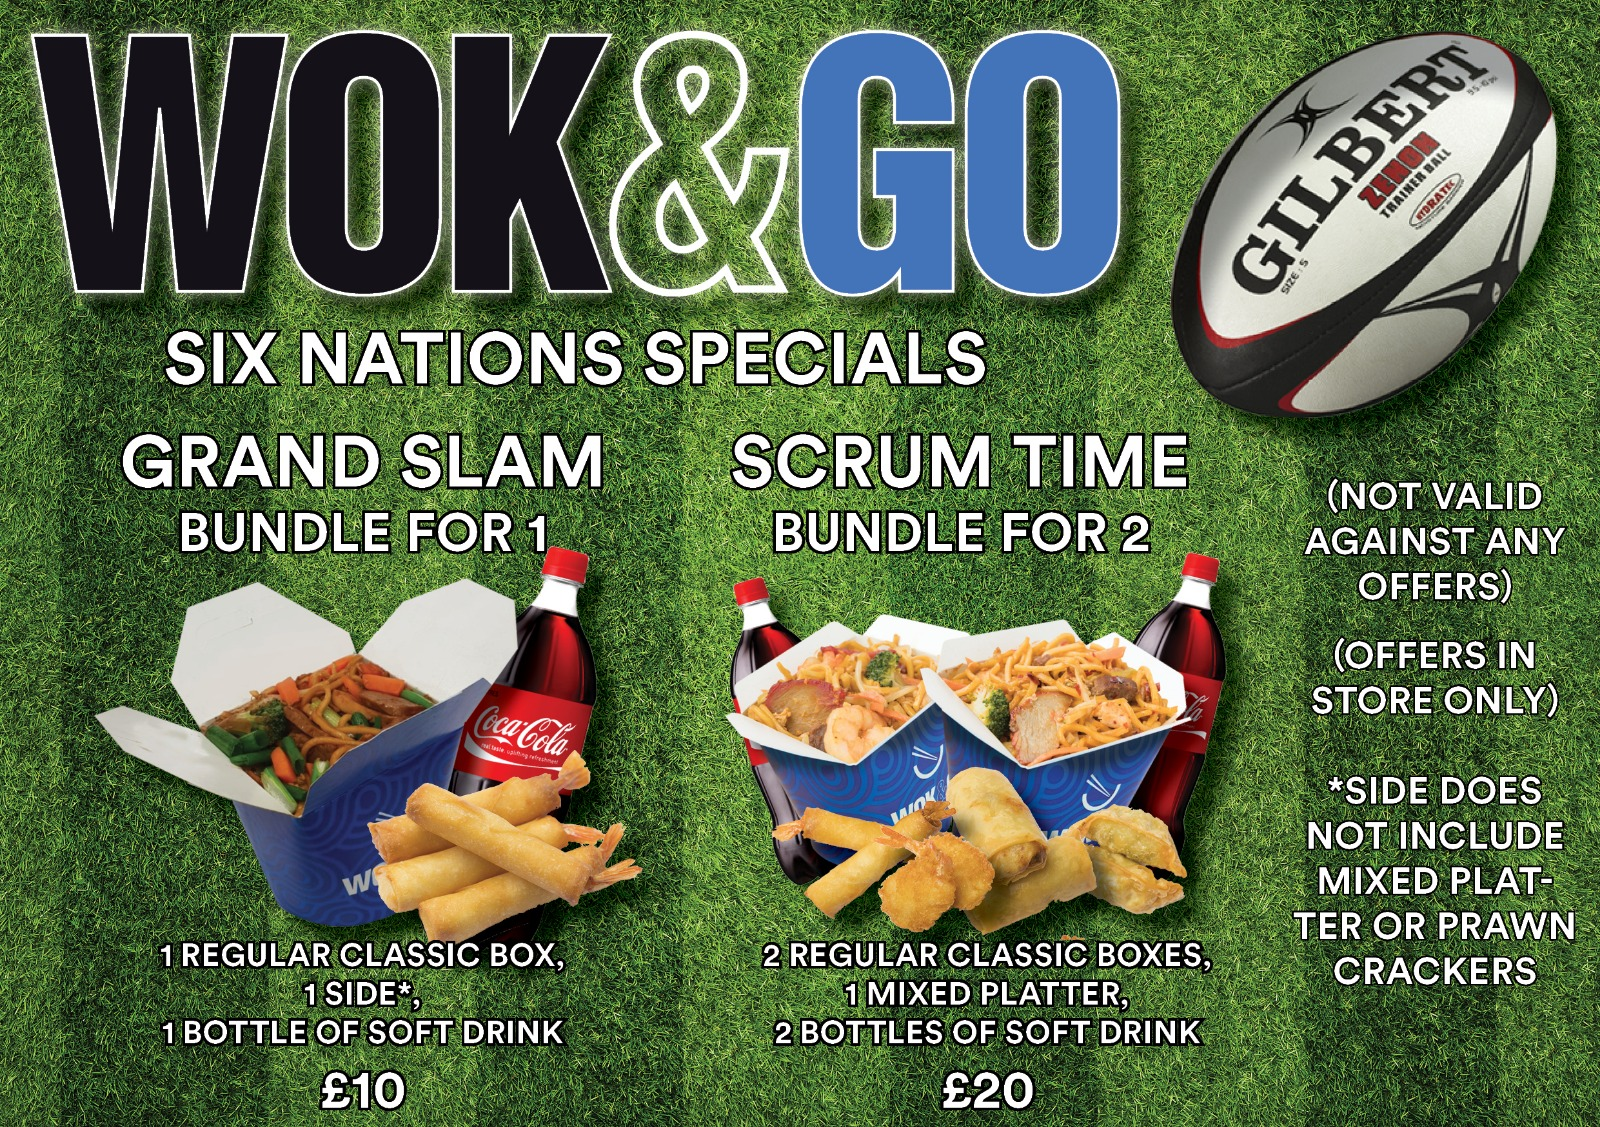 Wok&Go Offers Deals Bundles